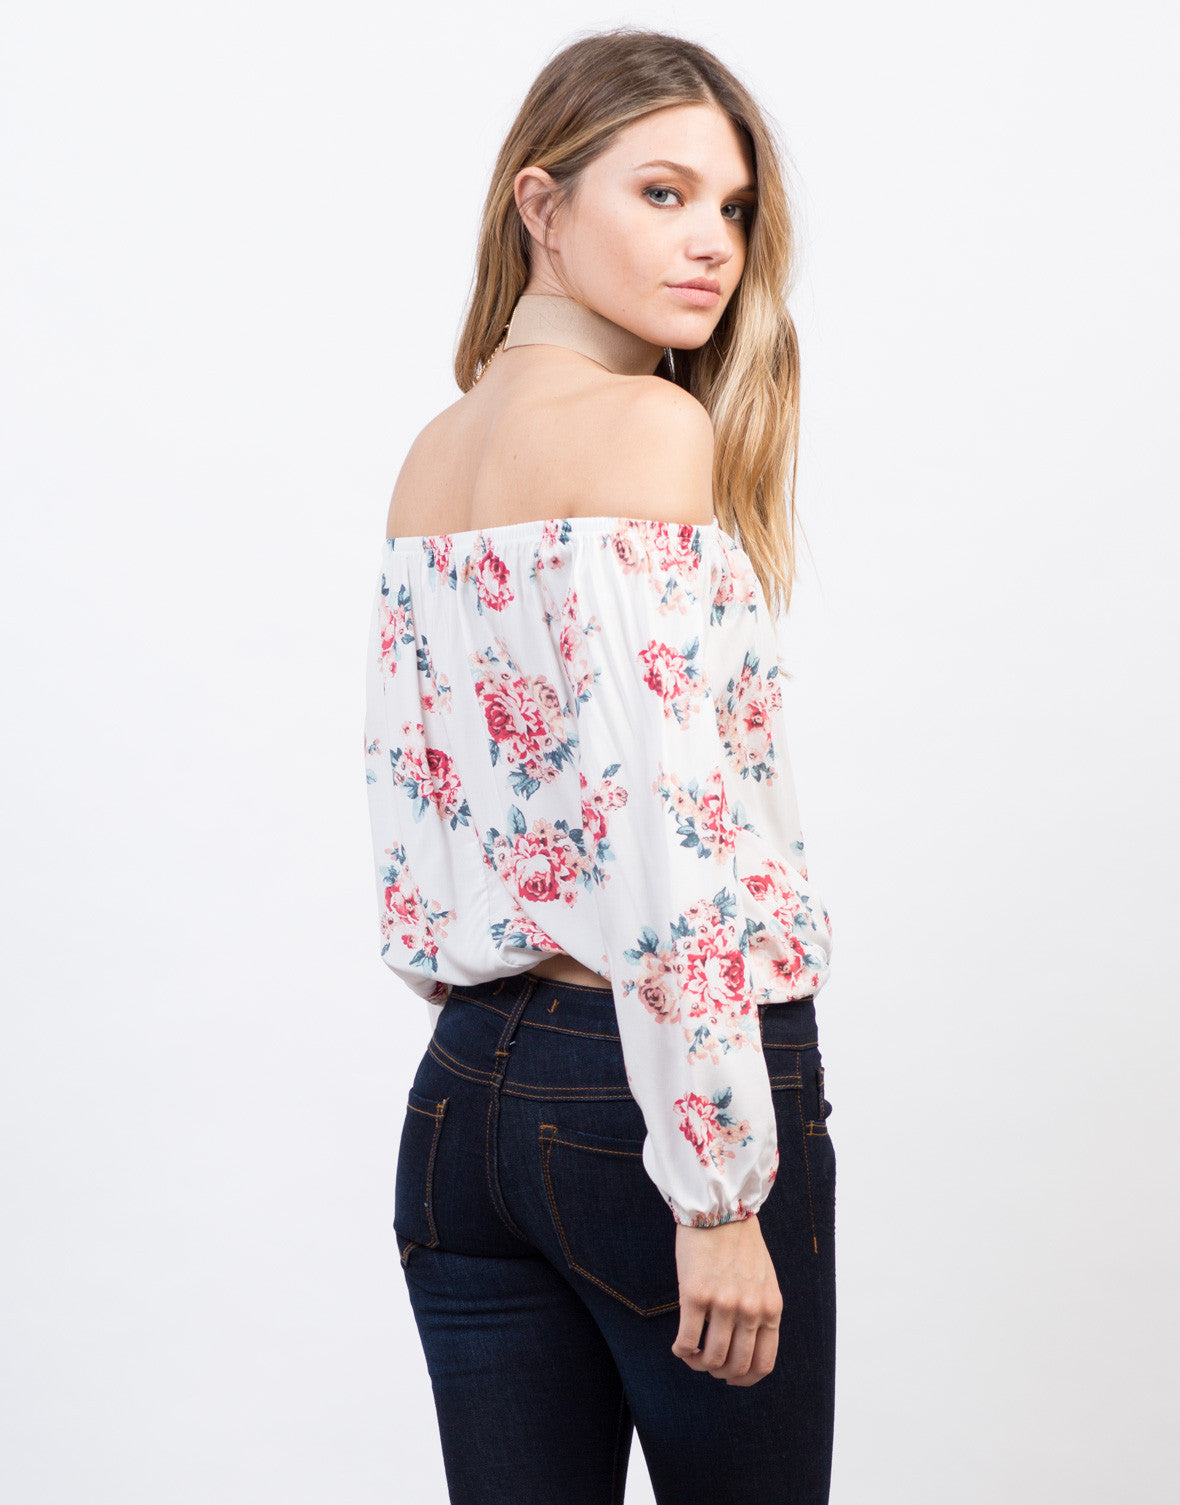 Back View of Rosey Off-the-Shoulder Crop Top